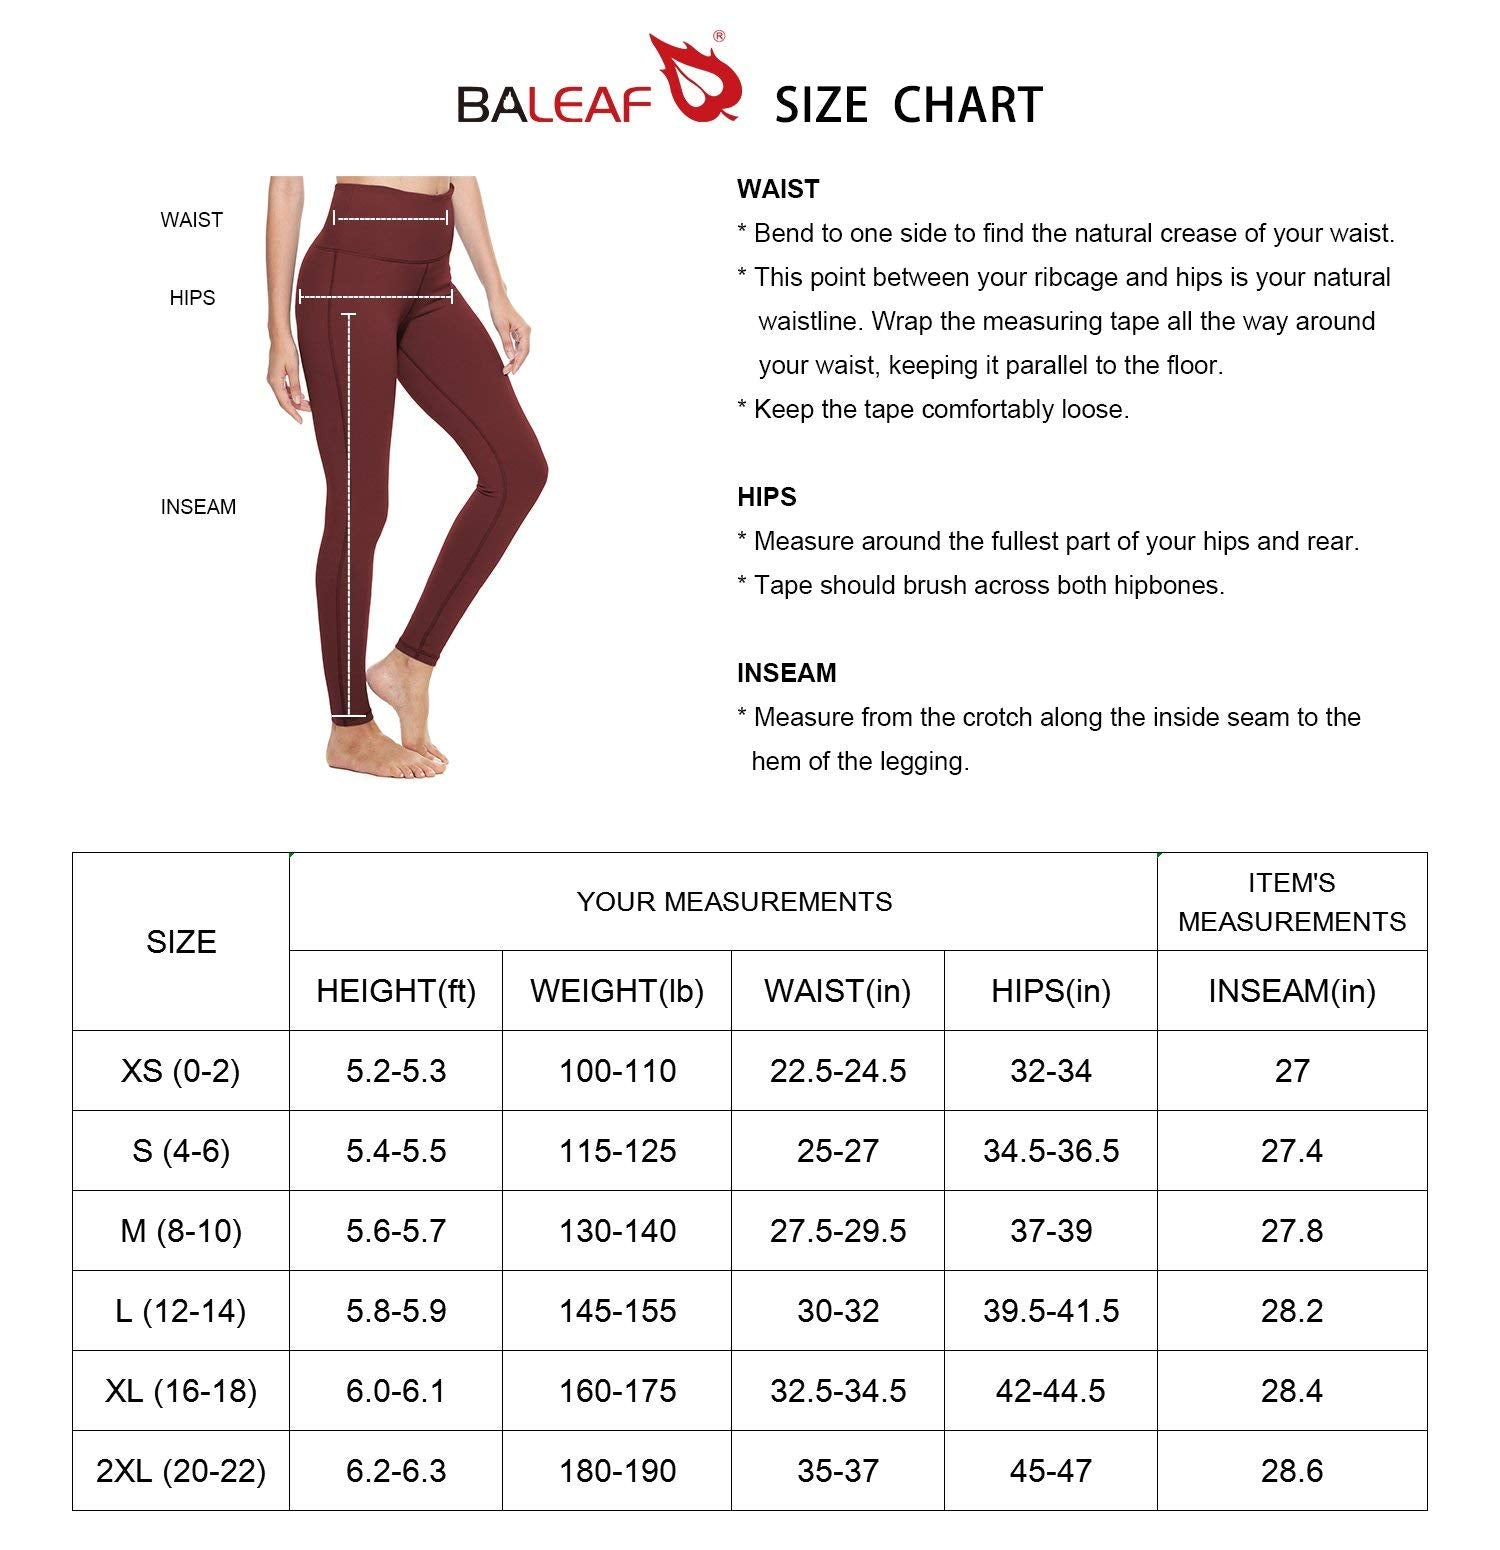 BALEAF Women's Yoga Leggings High Waisted Tummy Control Pants Non See-Through Fabric.(Plus Size/Regular)